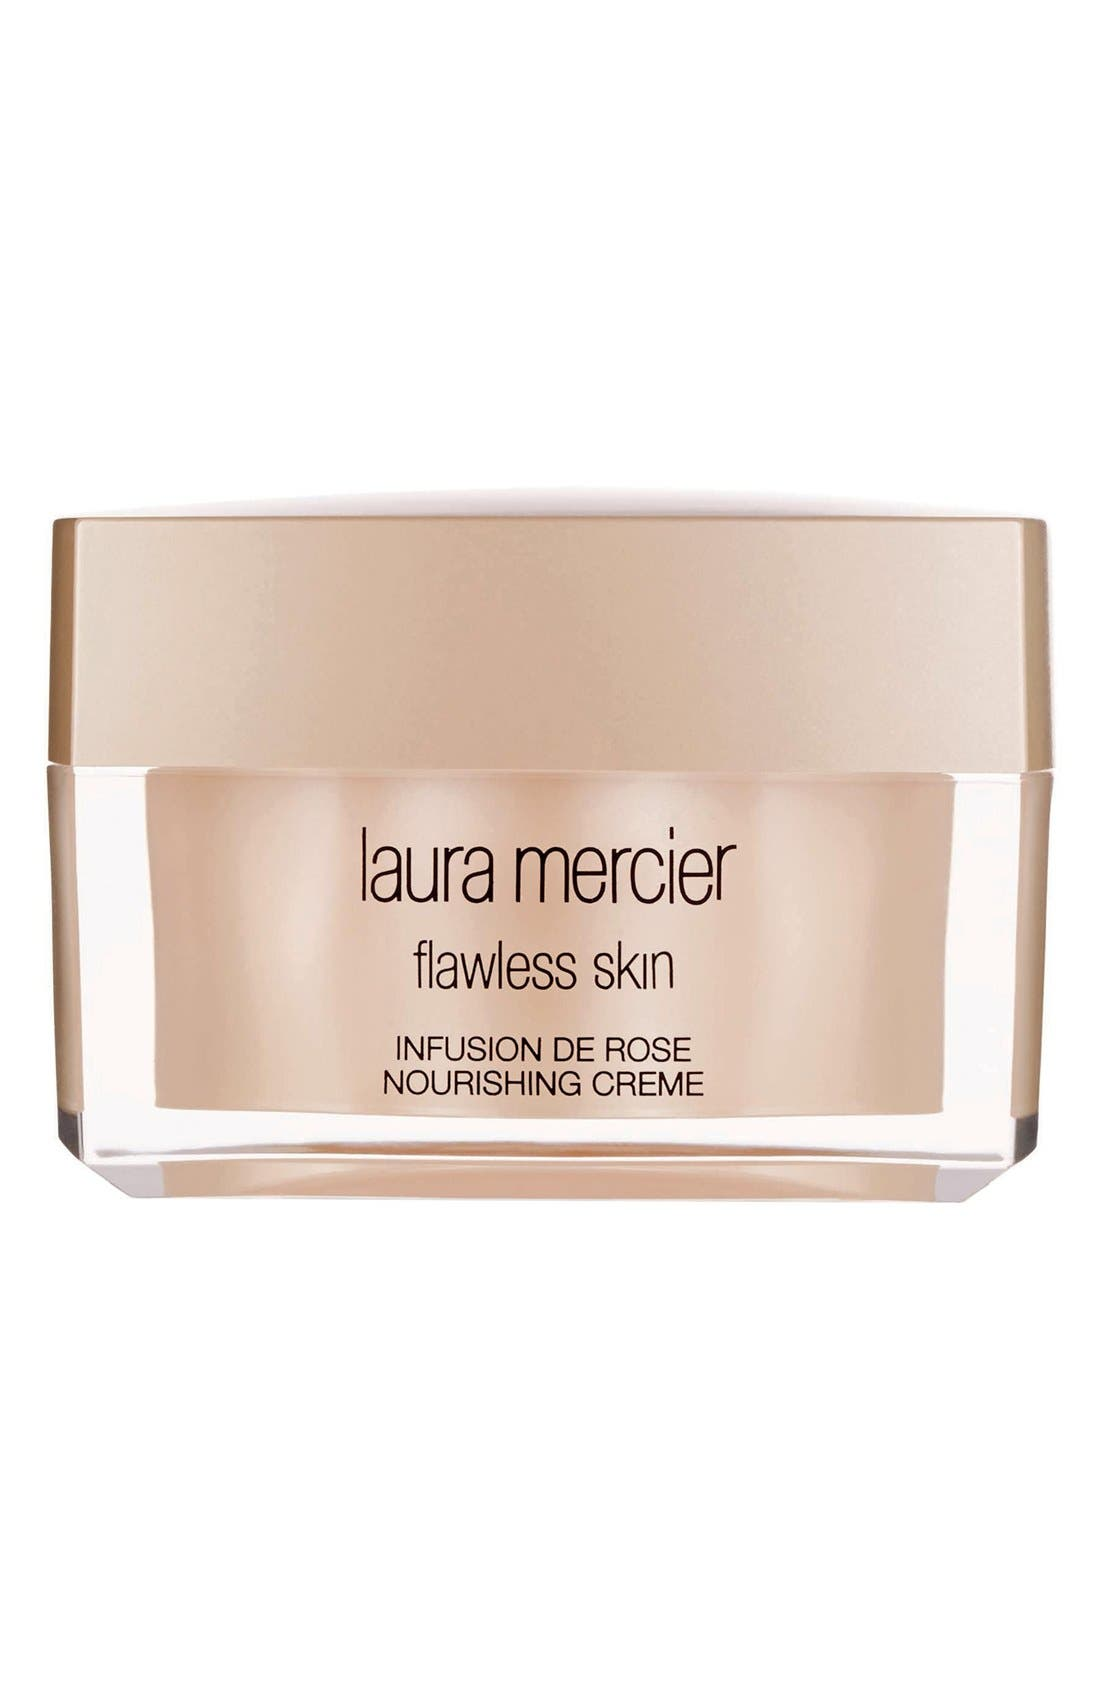 'Flawless Skin' Infusion de Rose Nourishing Crème,                             Main thumbnail 1, color,                             NO COLOR